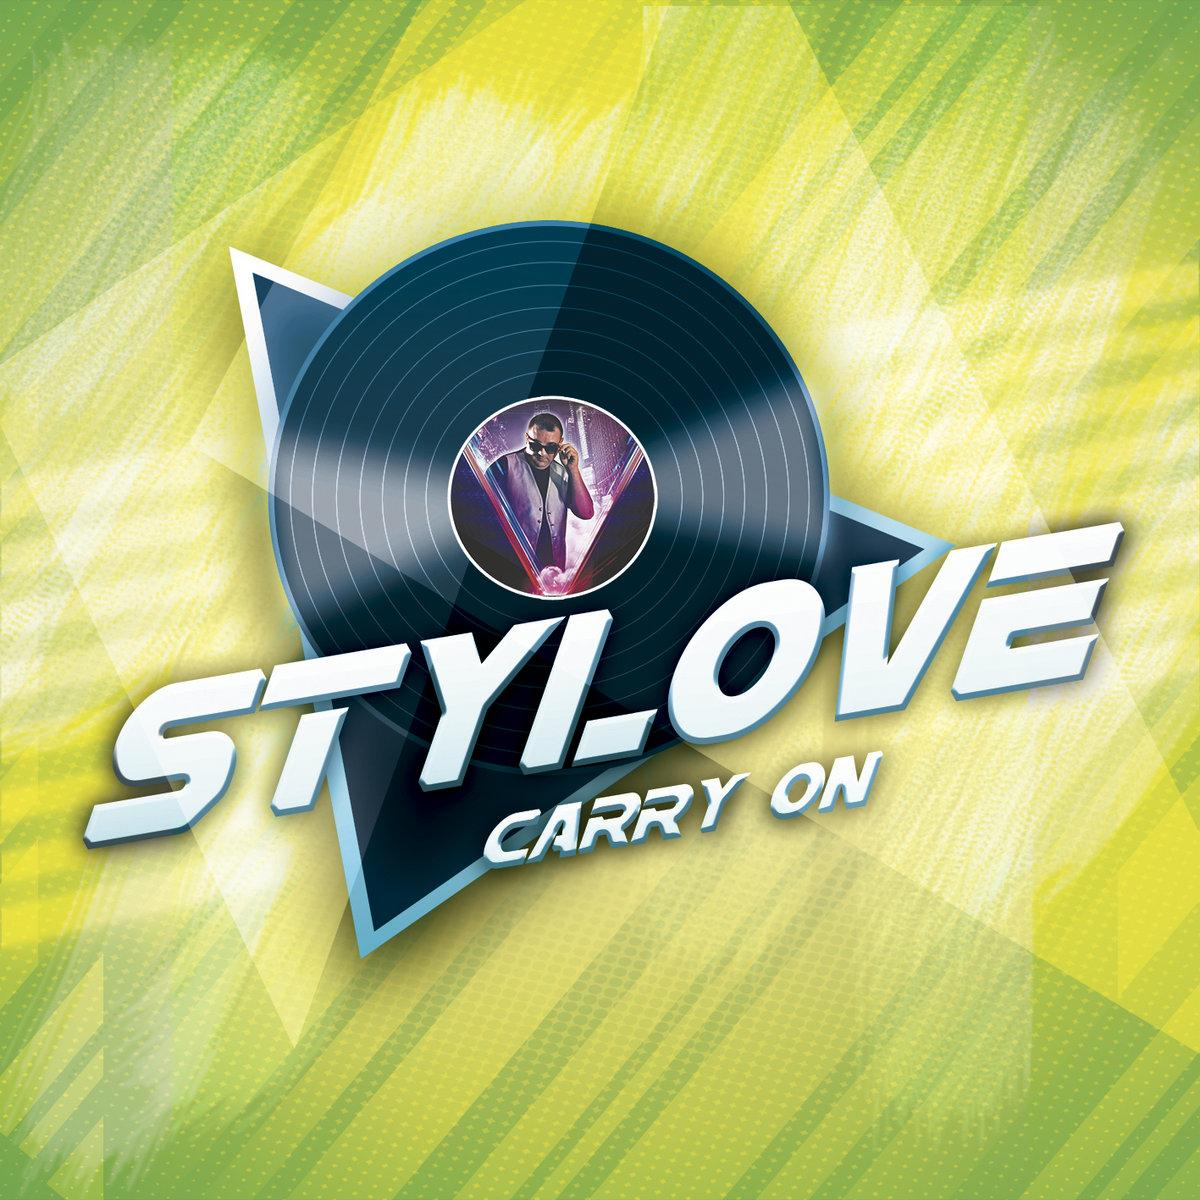 Stylove - Carry On